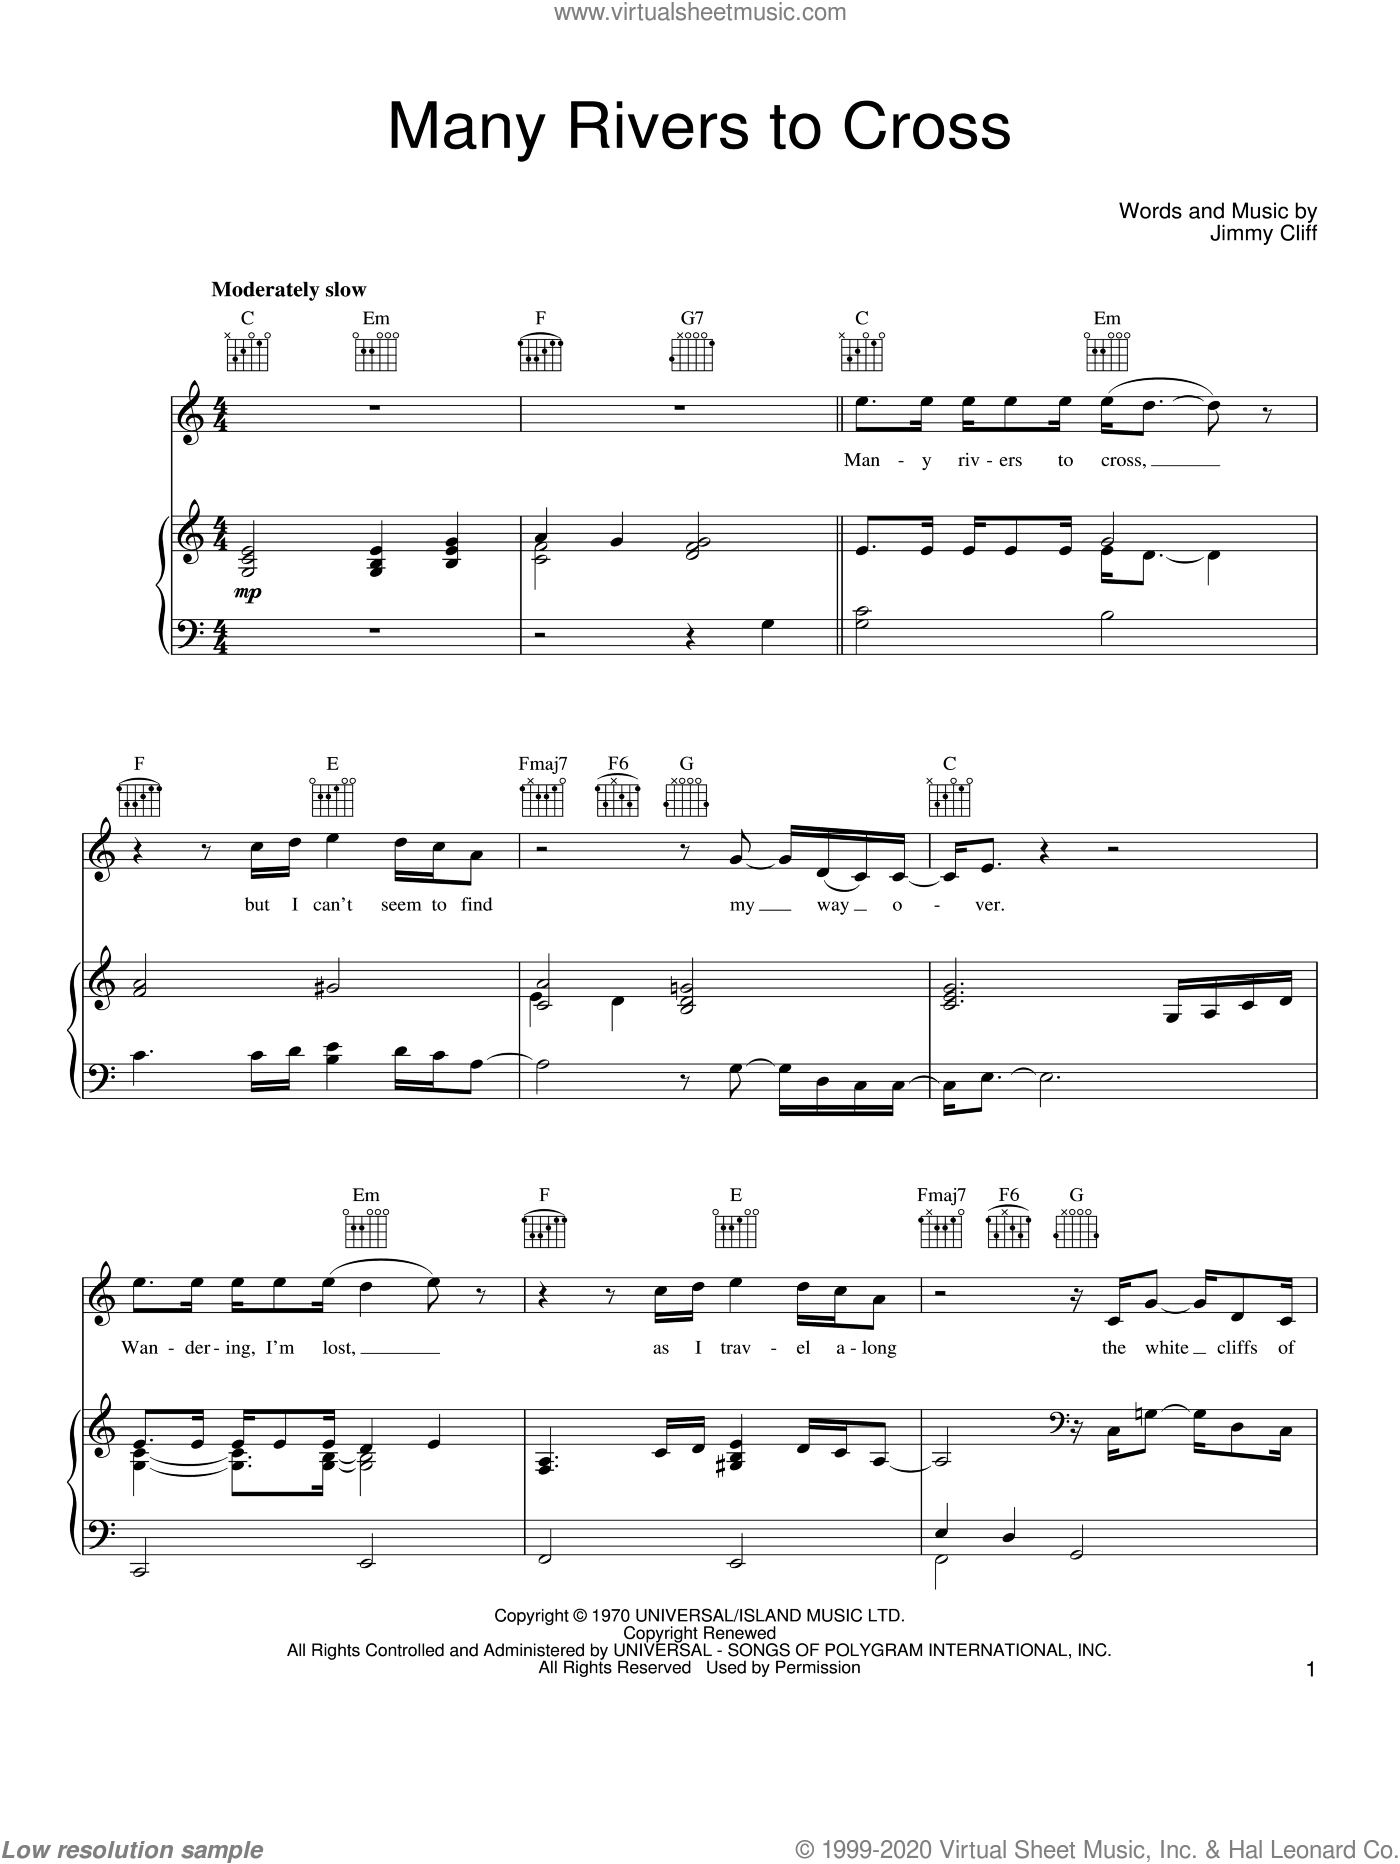 Many Rivers To Cross sheet music for voice, piano or guitar by Joe Cocker, UB40 and Jimmy Cliff. Score Image Preview.